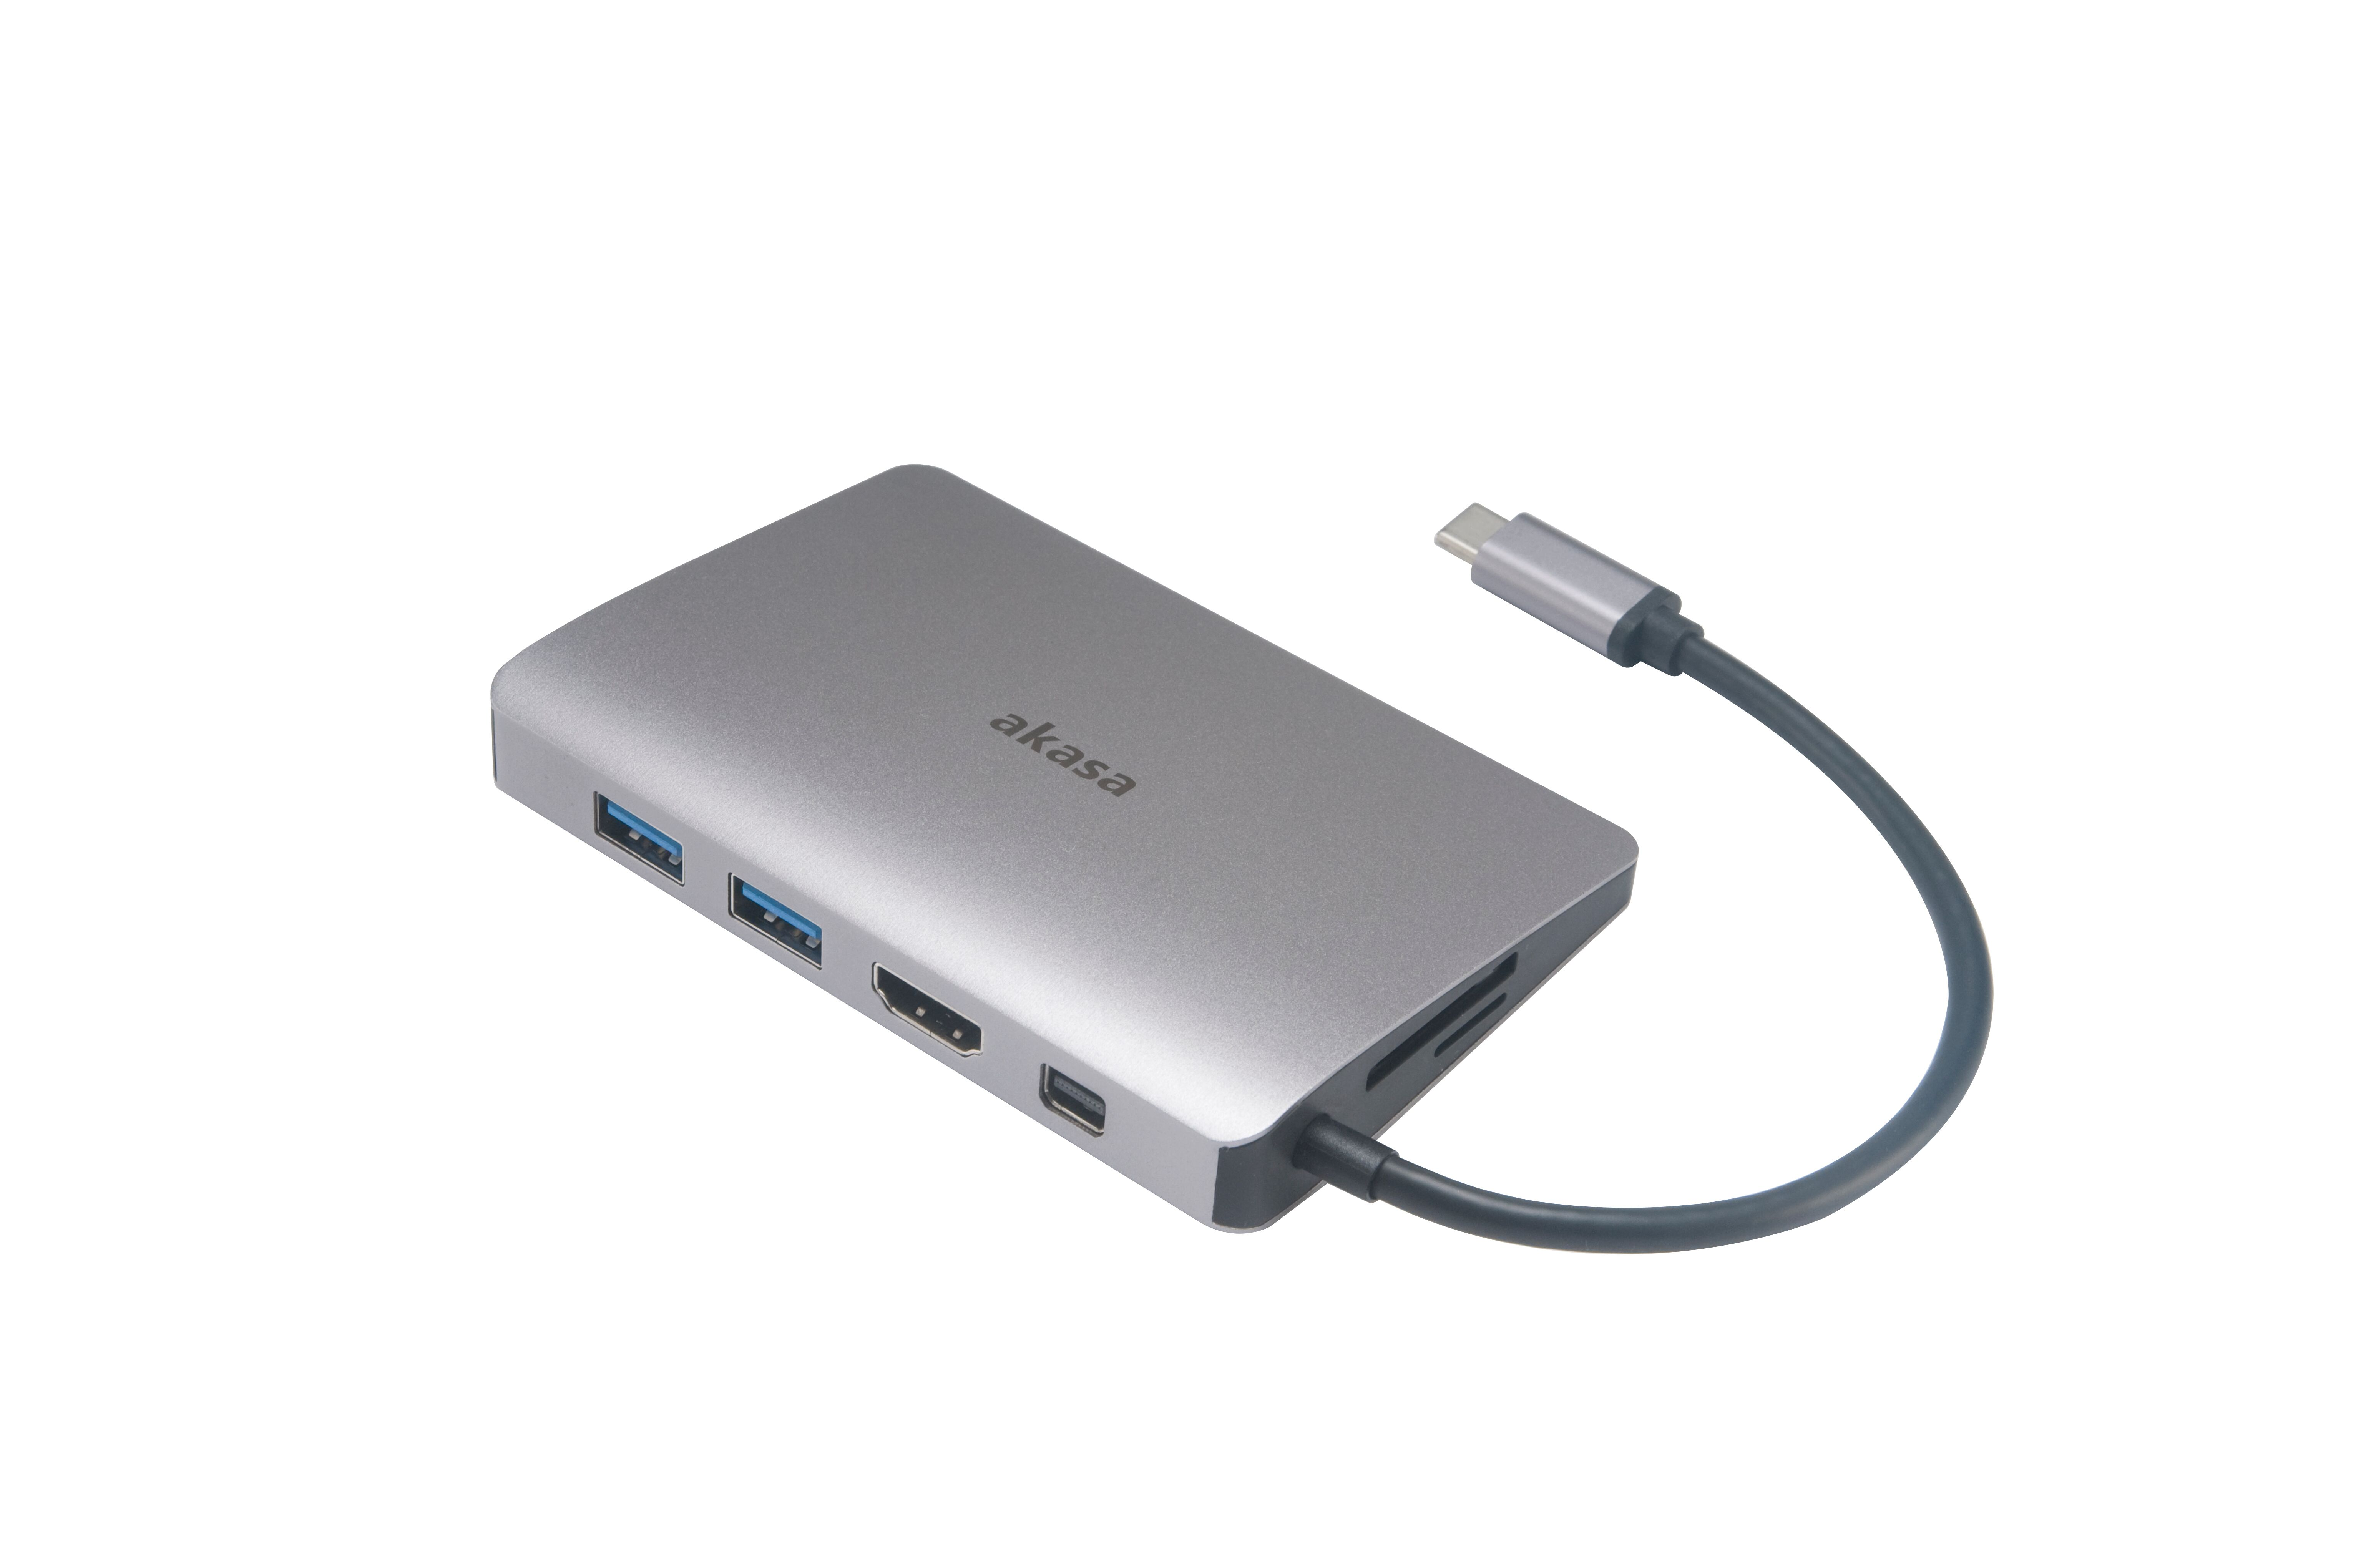 Akasa USB 3.1 Type C 9 In 1 Dock (Power Delivery Type Cx1,USB3.1Type A x 2/SD,Micro SD Card Reader/4K HDMI/GbE/ Mini DP/Audio)